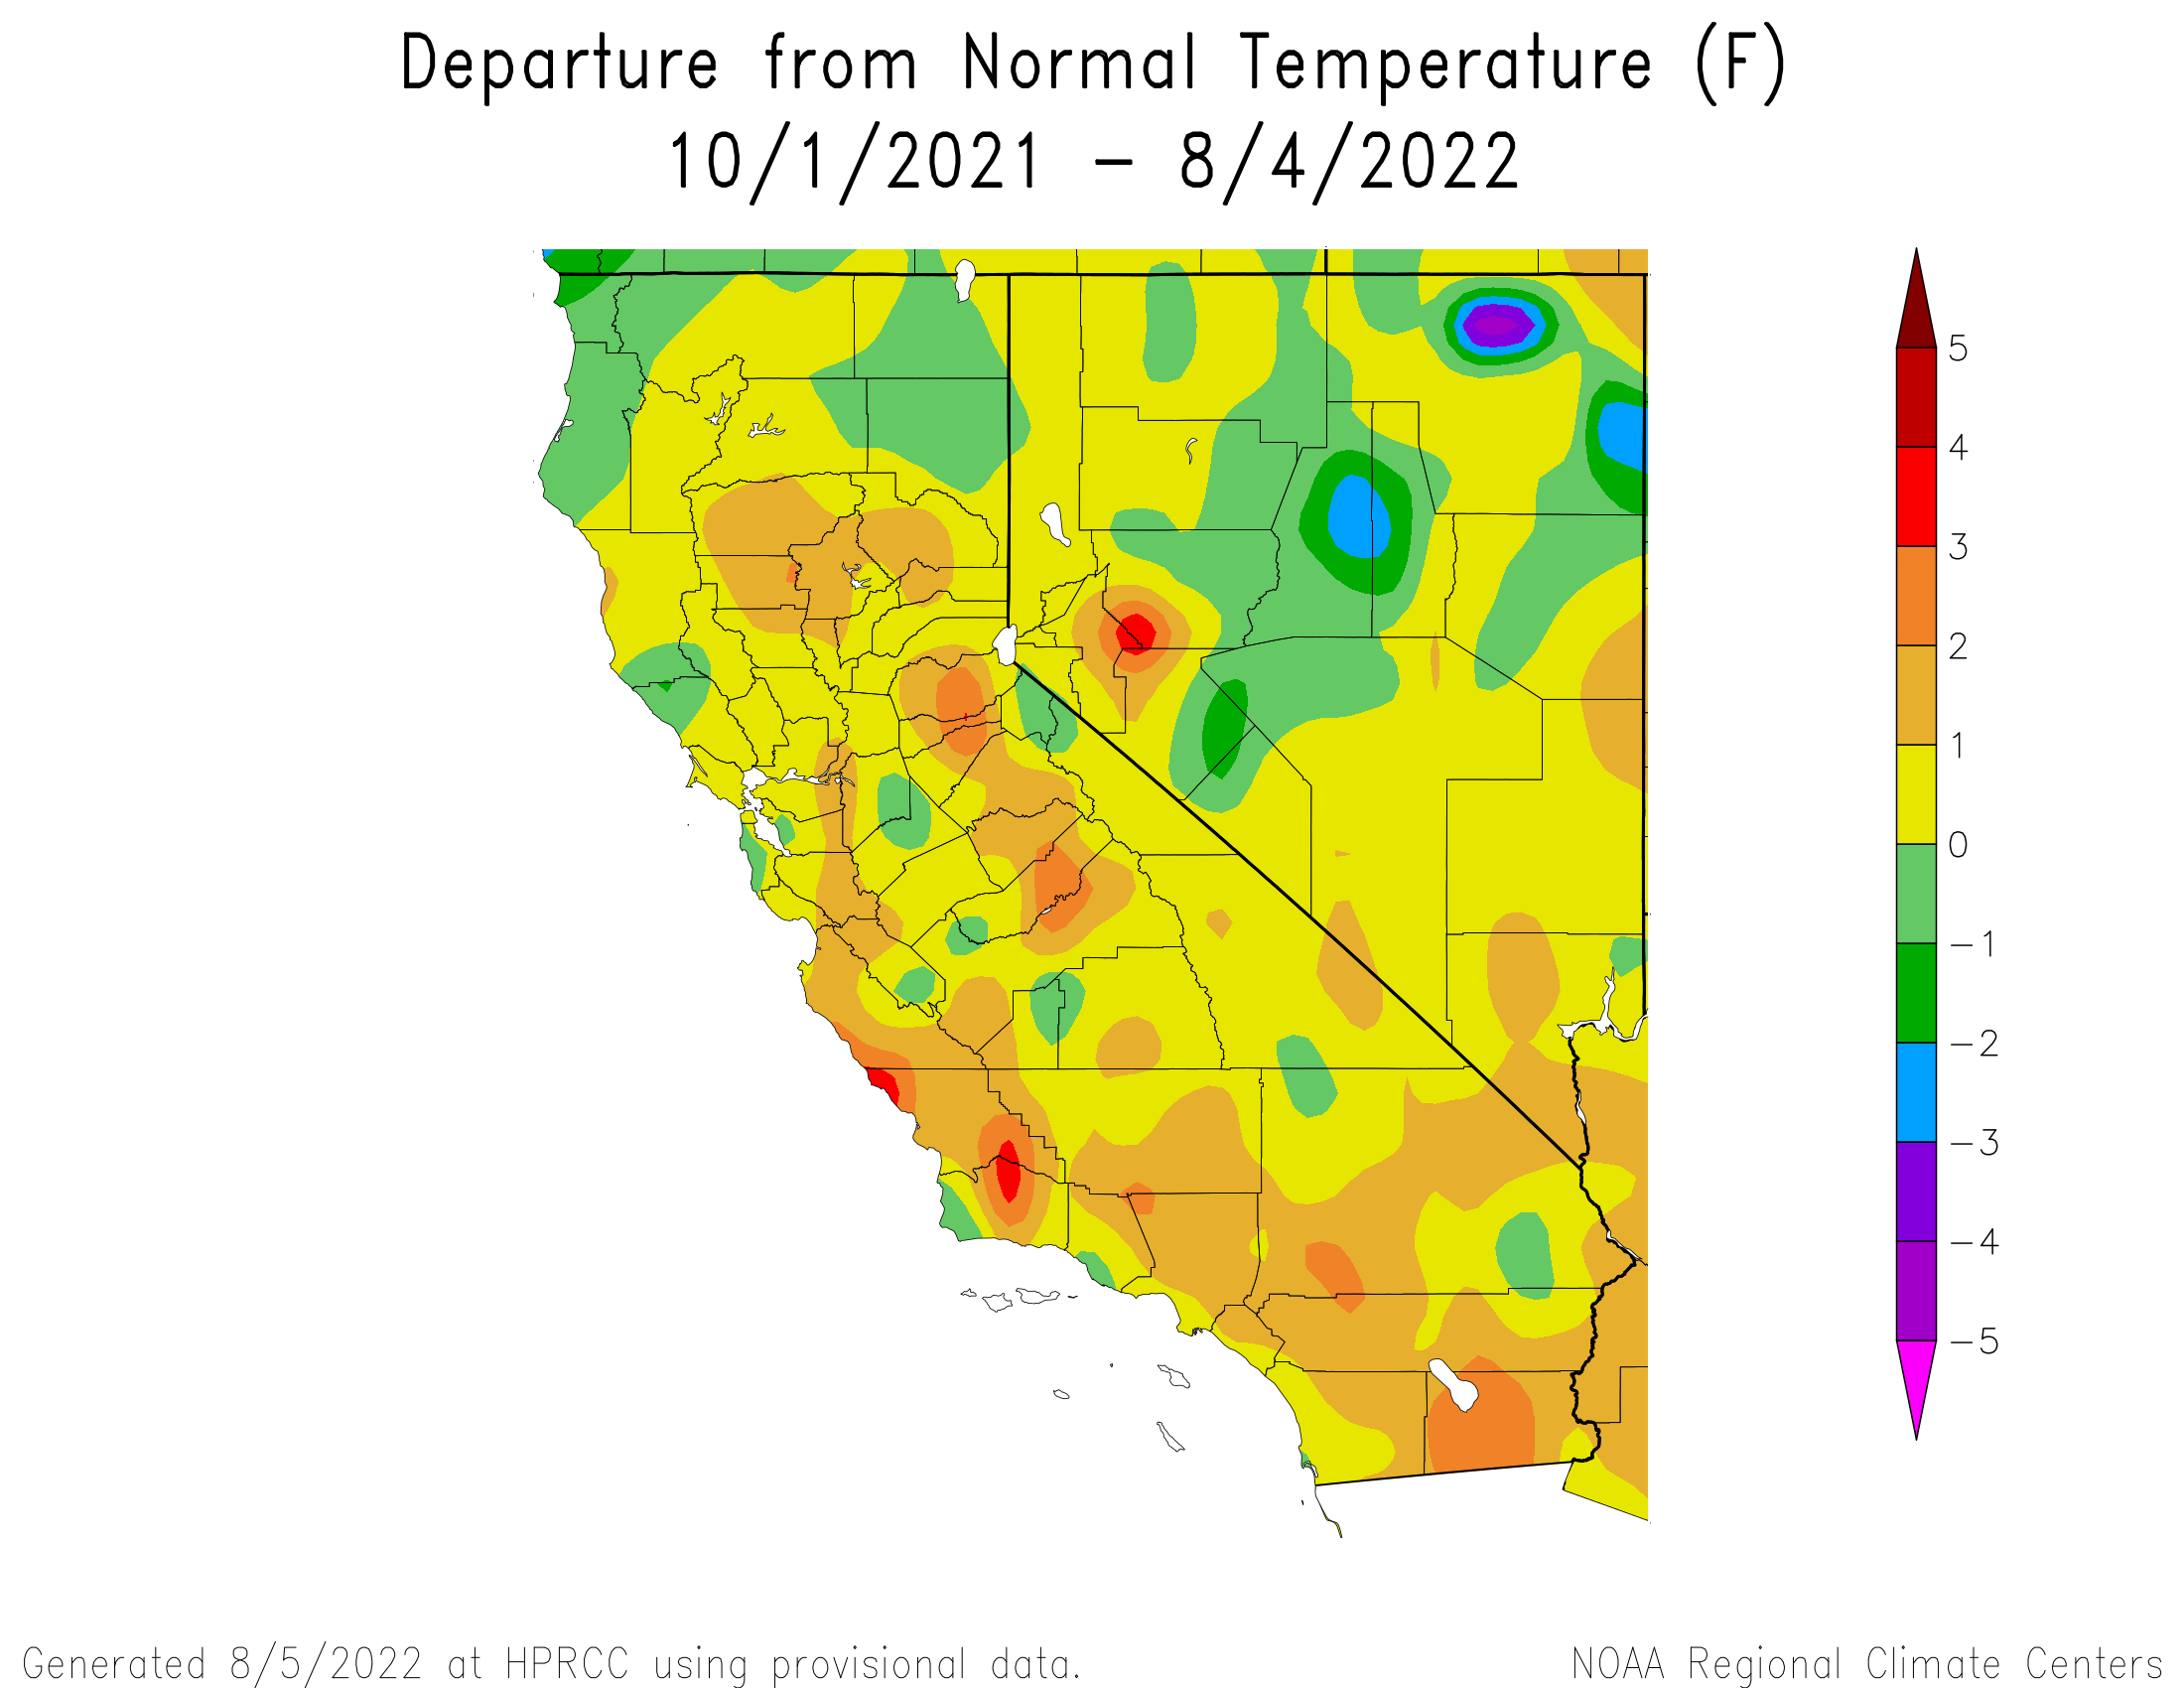 Departure from Normal Temperature for California